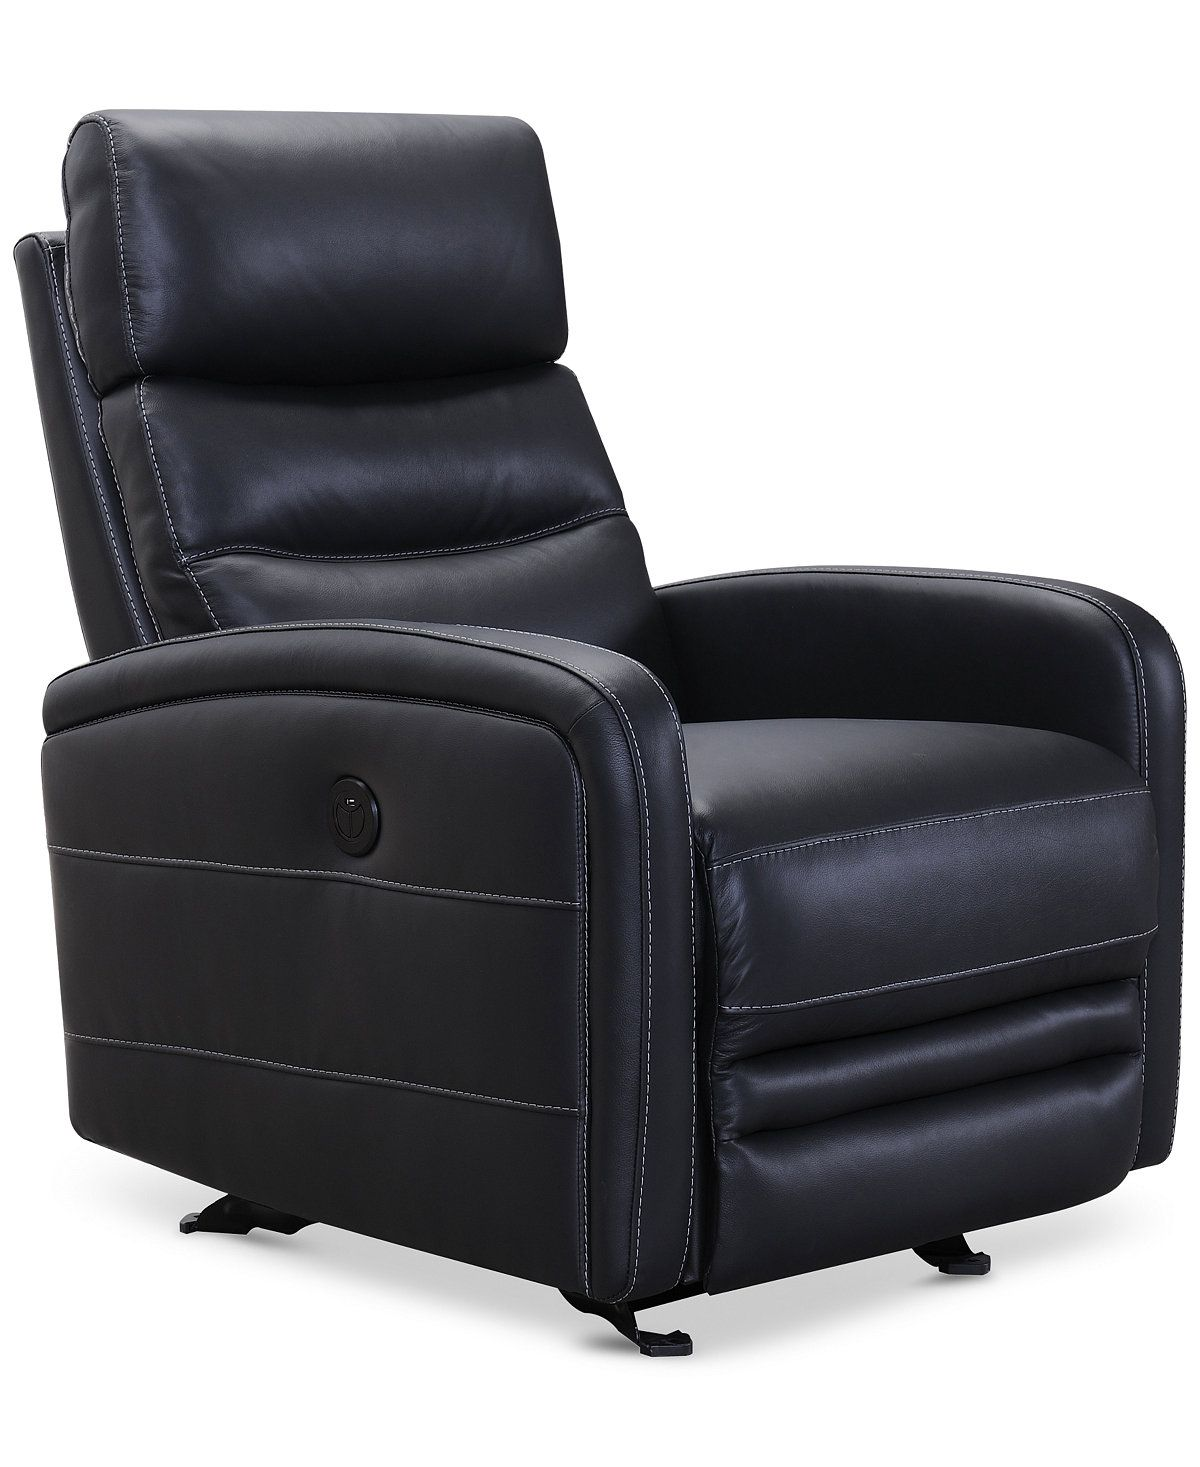 Electric Recliner Leather Chairs Jensen Leather Power Recliner With Usb Power Outlet Furniture